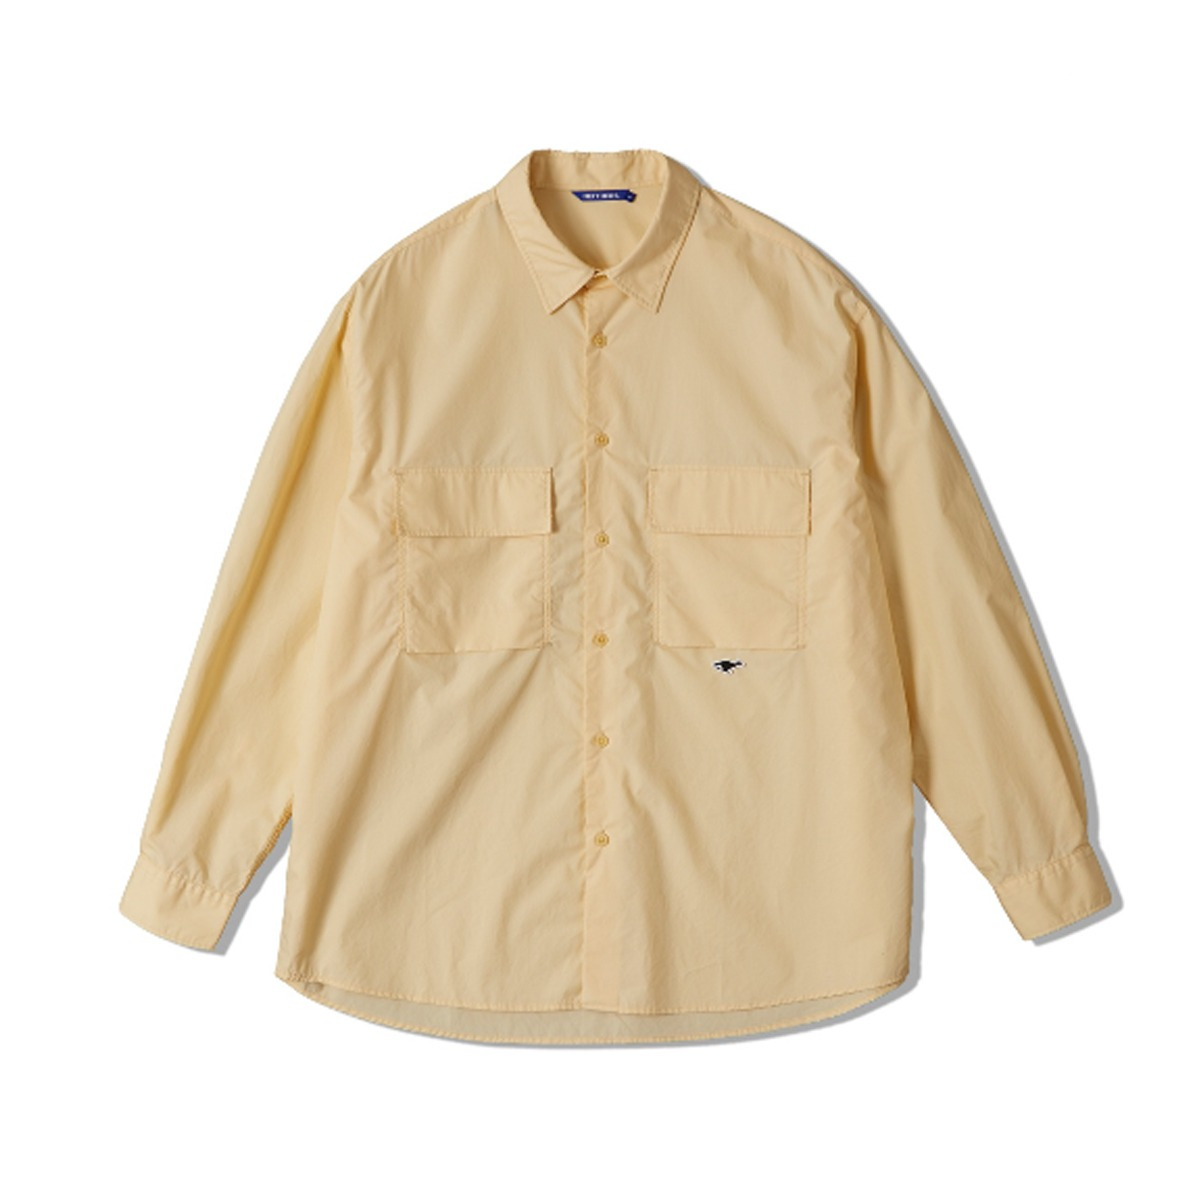 [NEITHERS] 2-POCKET WIDE SHIRT 'IVORY'